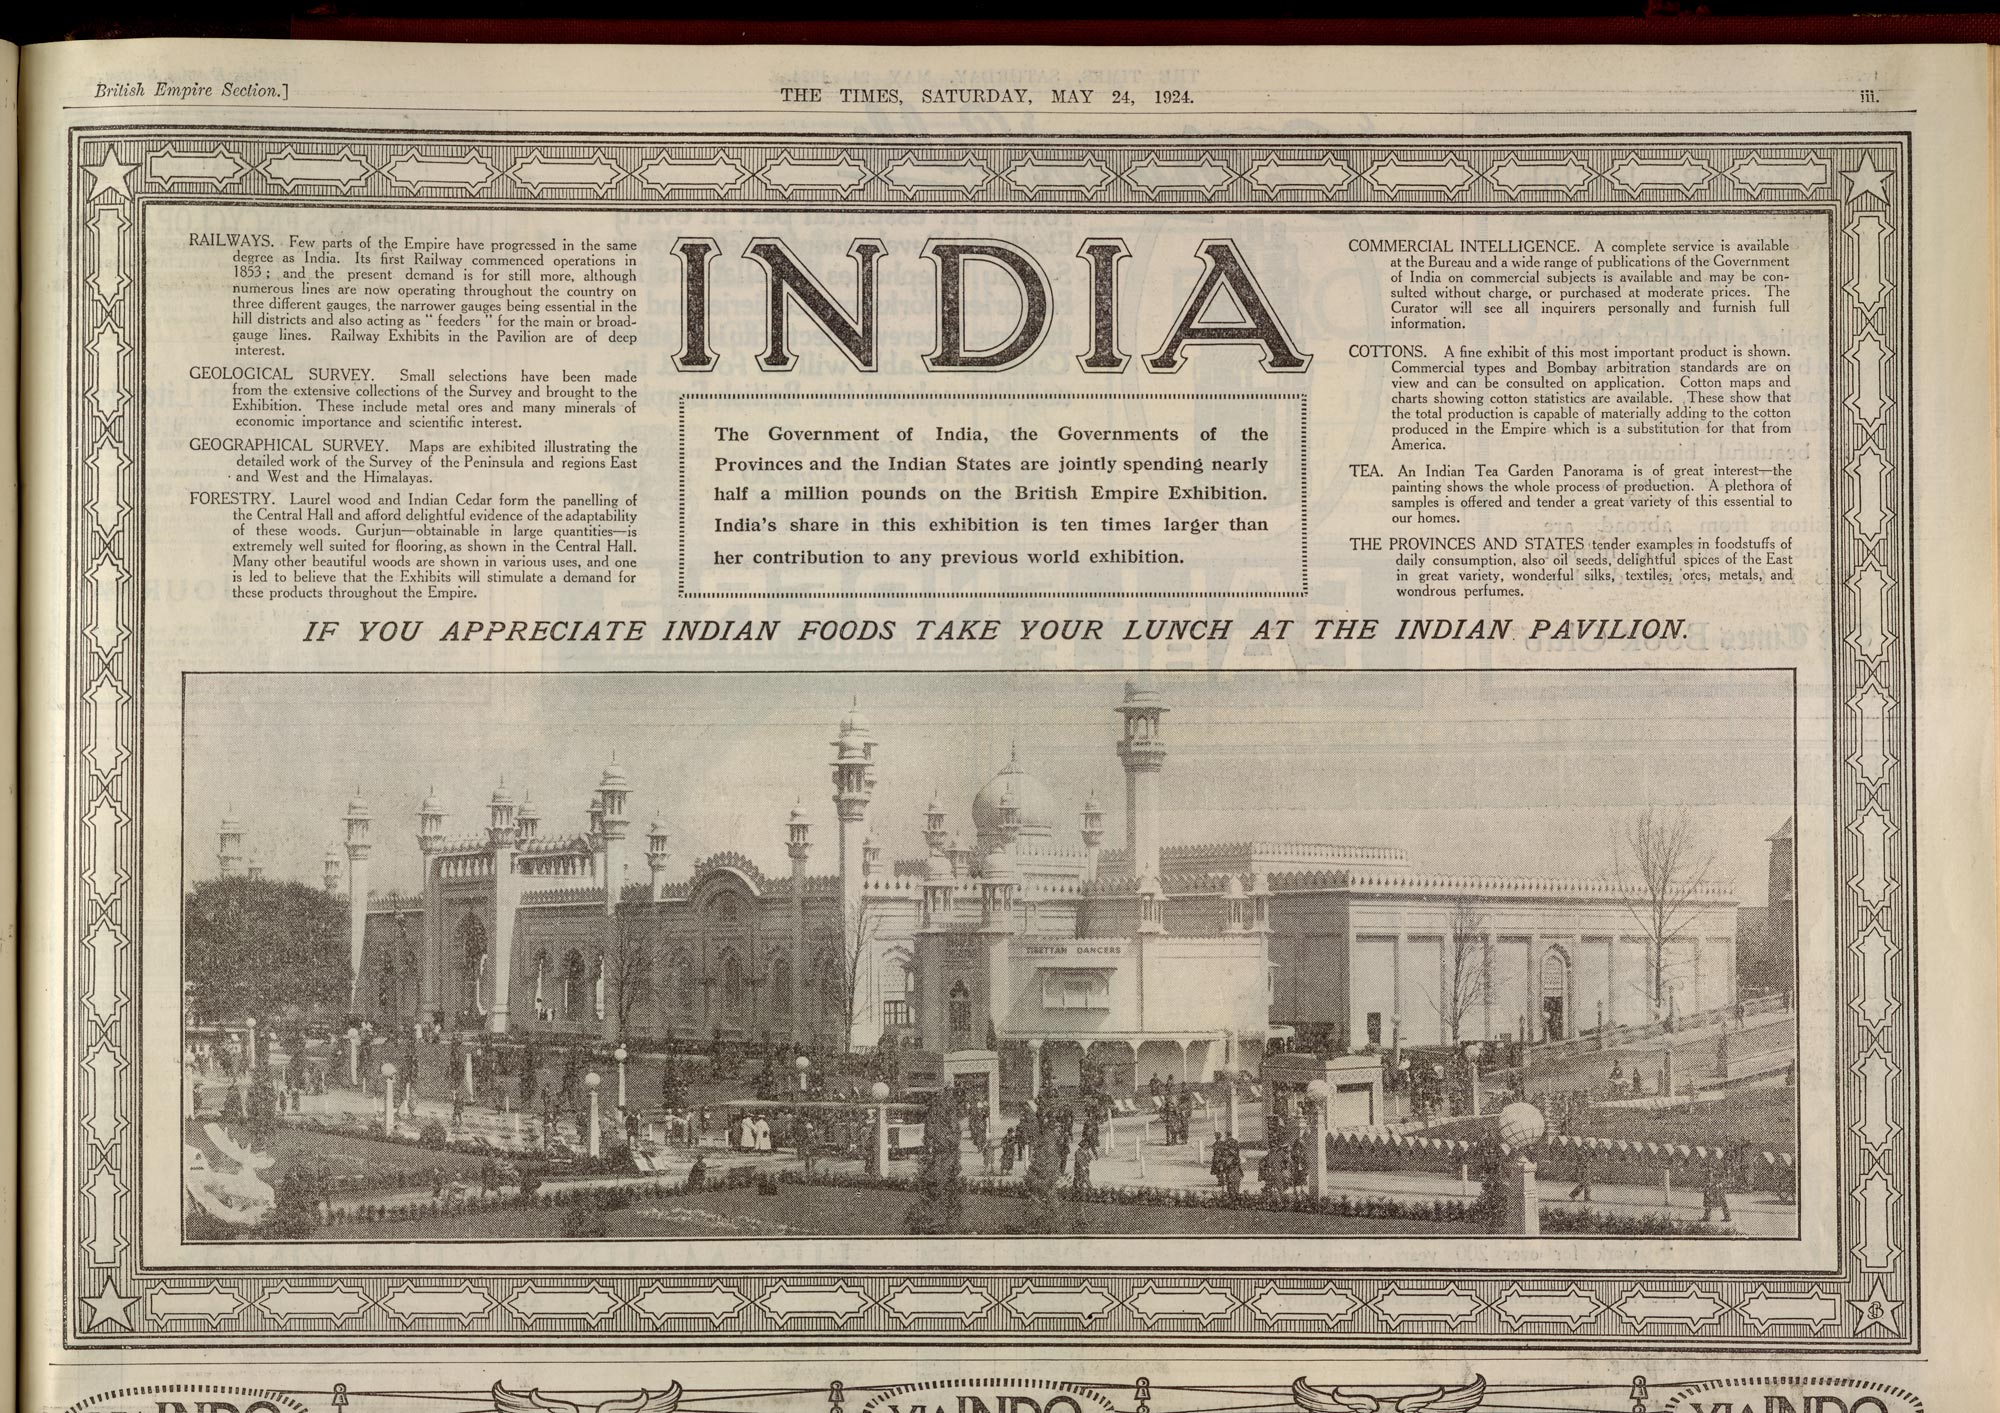 Advertisement for the Indian Pavillion and British Empire Exhibition